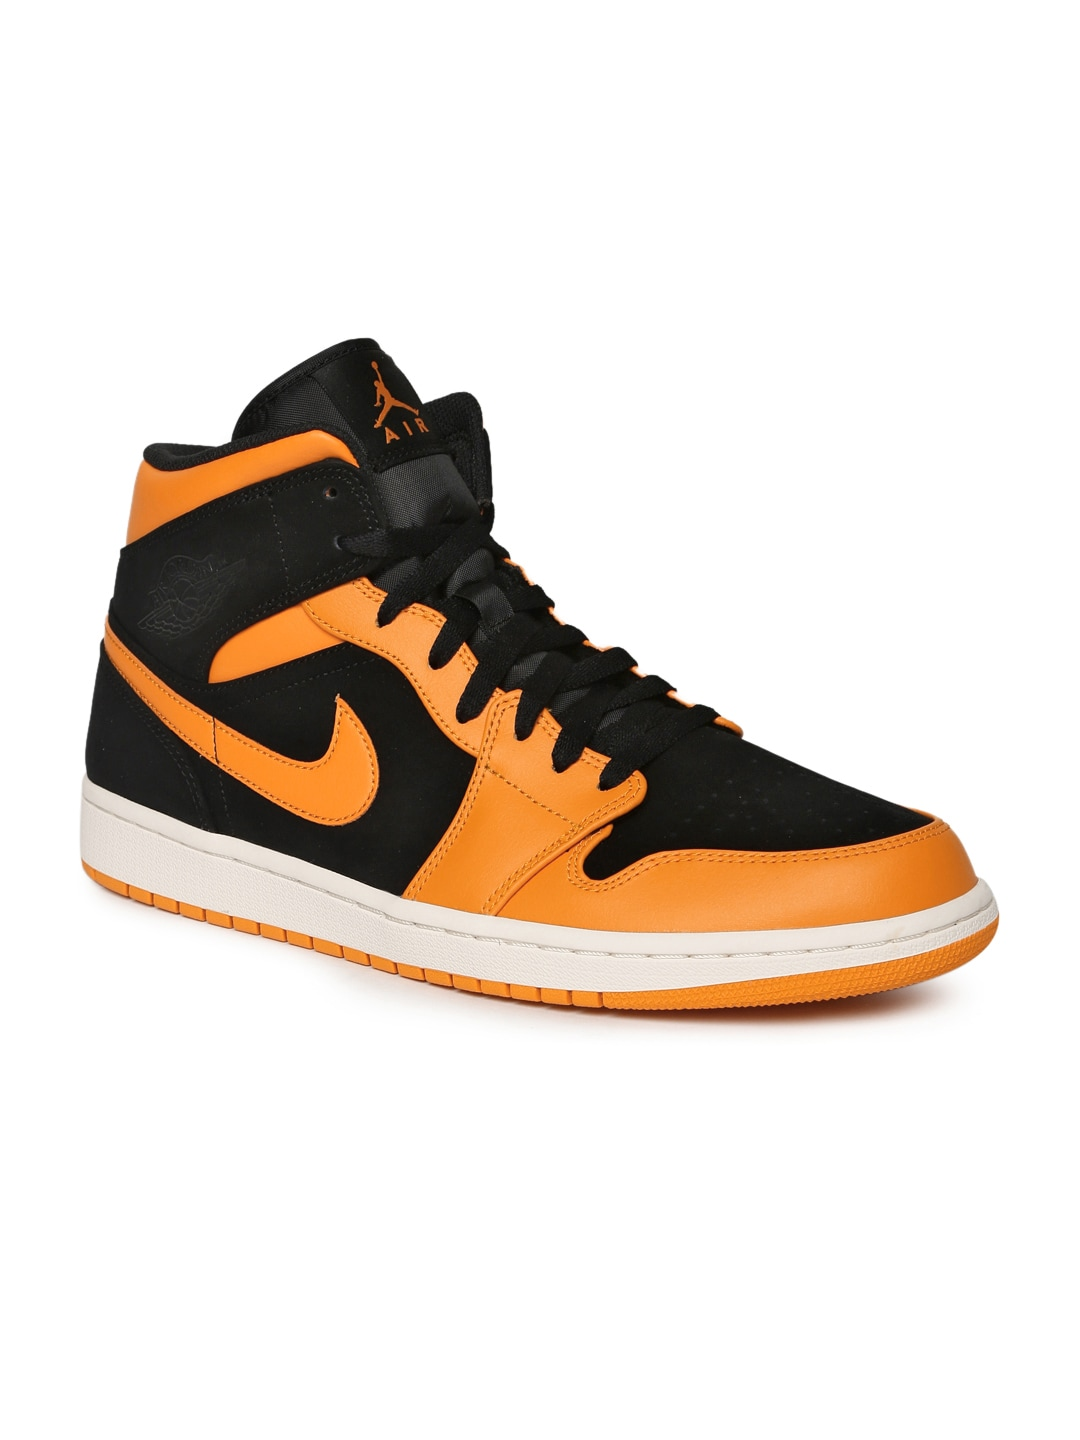 32728f29f260 Nike Mid Black Shoes Sports - Buy Nike Mid Black Shoes Sports online in  India